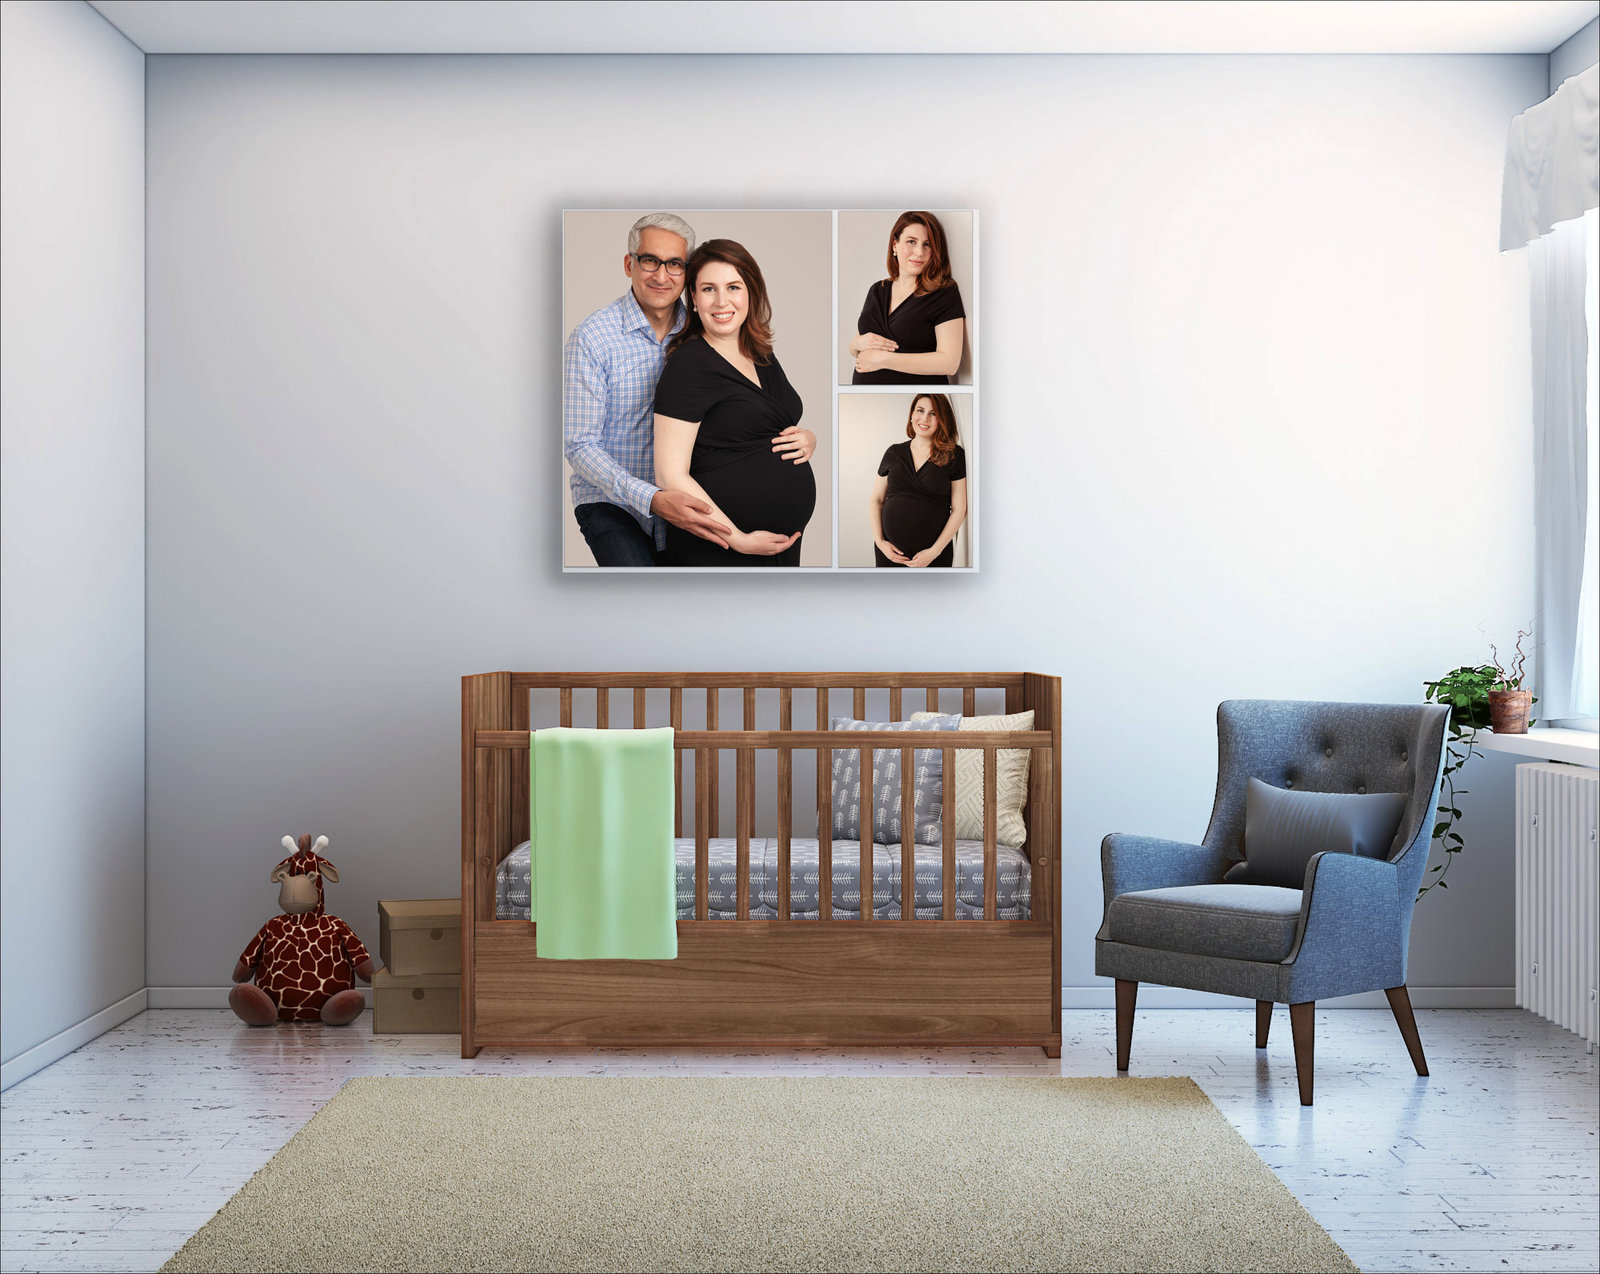 nursery-maternity-portraits-photo-inspiration-ideas-dreamer-collection-chris-bojanovich-portraits-greenwich-ct